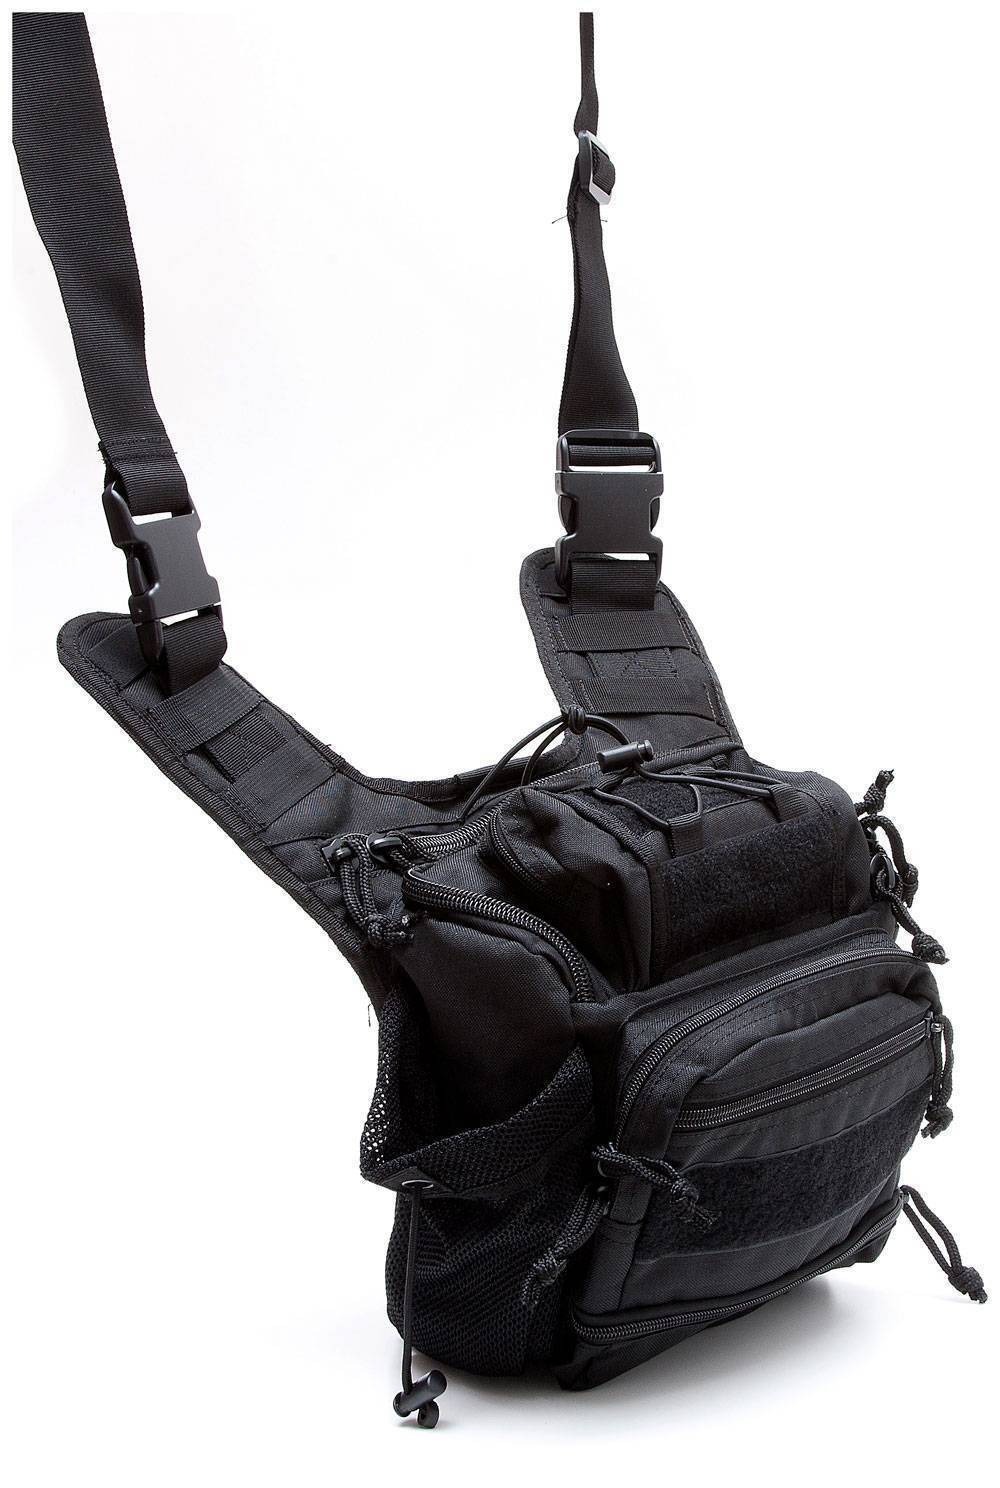 Тактическая плечевая сумка Defcon 5 Tactical shoulder bag multi pocket Black D5-MSB05B